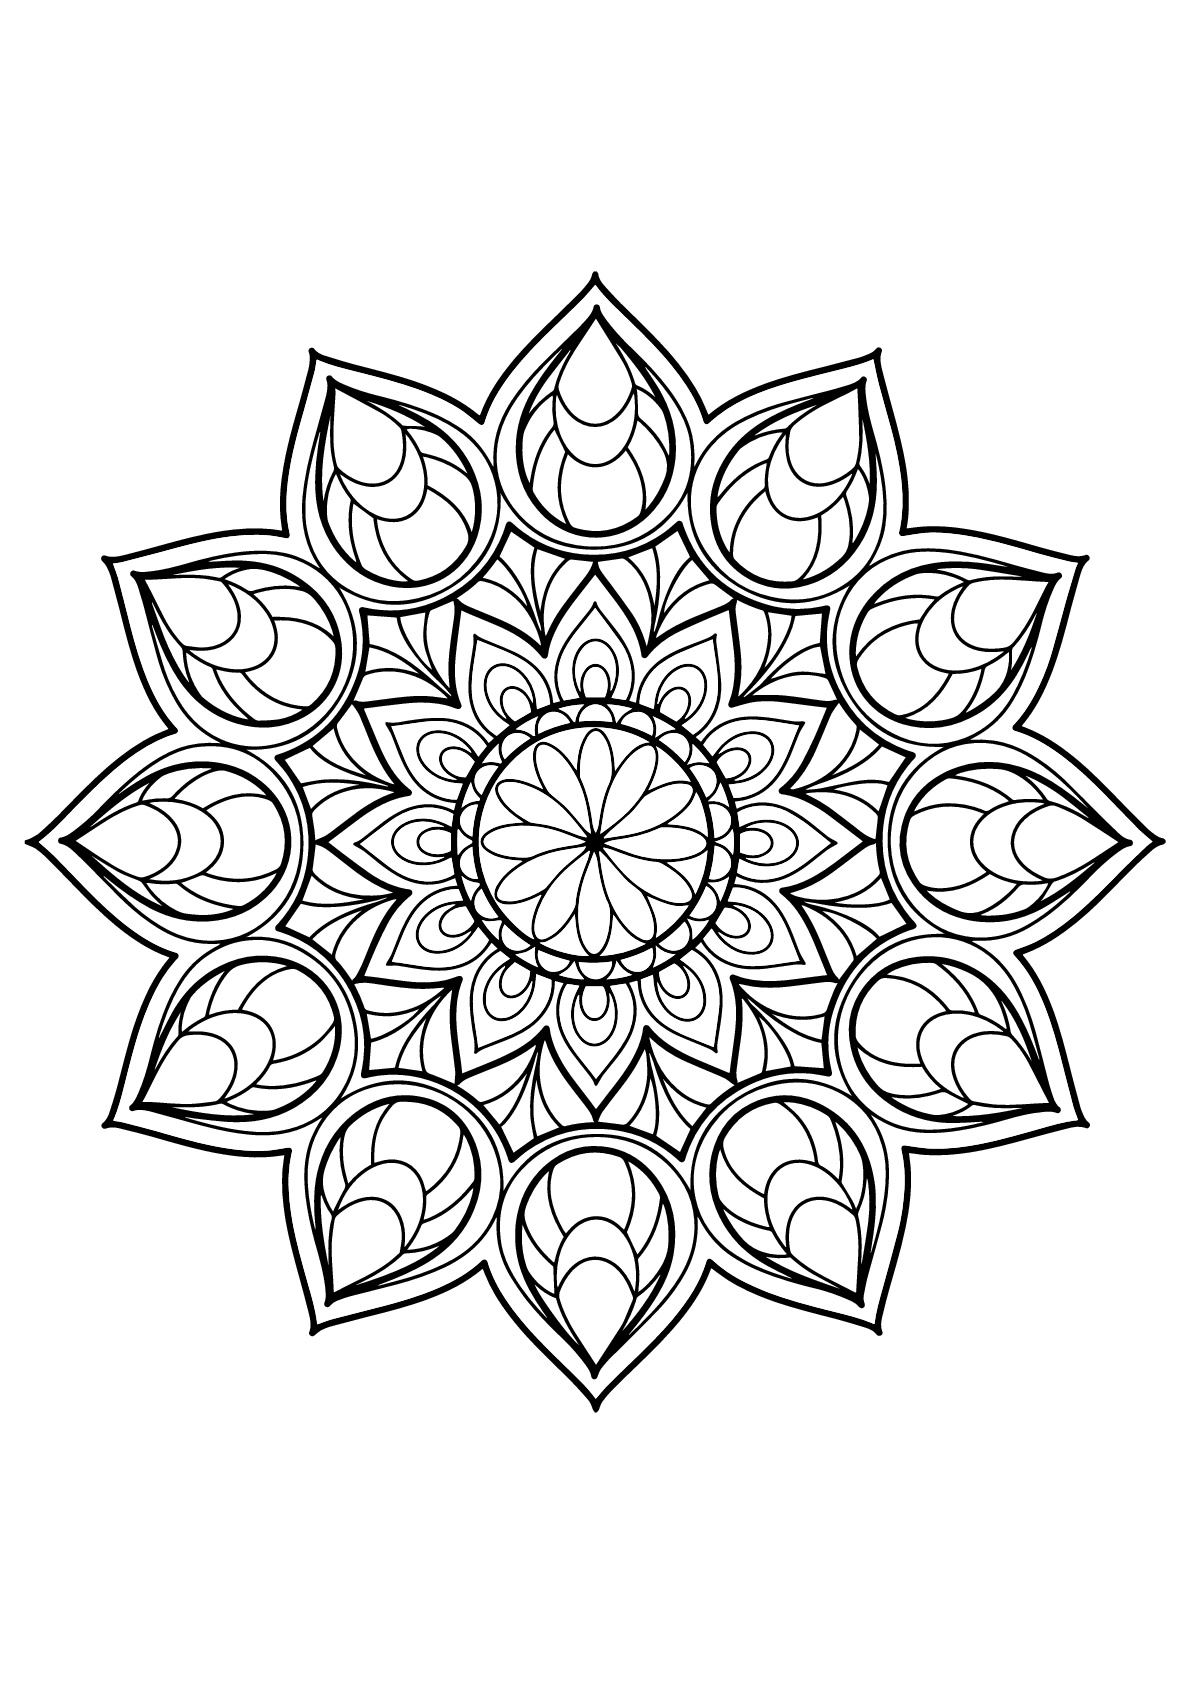 free printable mandalas for adults mandala from free coloring books for adults 6 mandalas adults printable mandalas for free